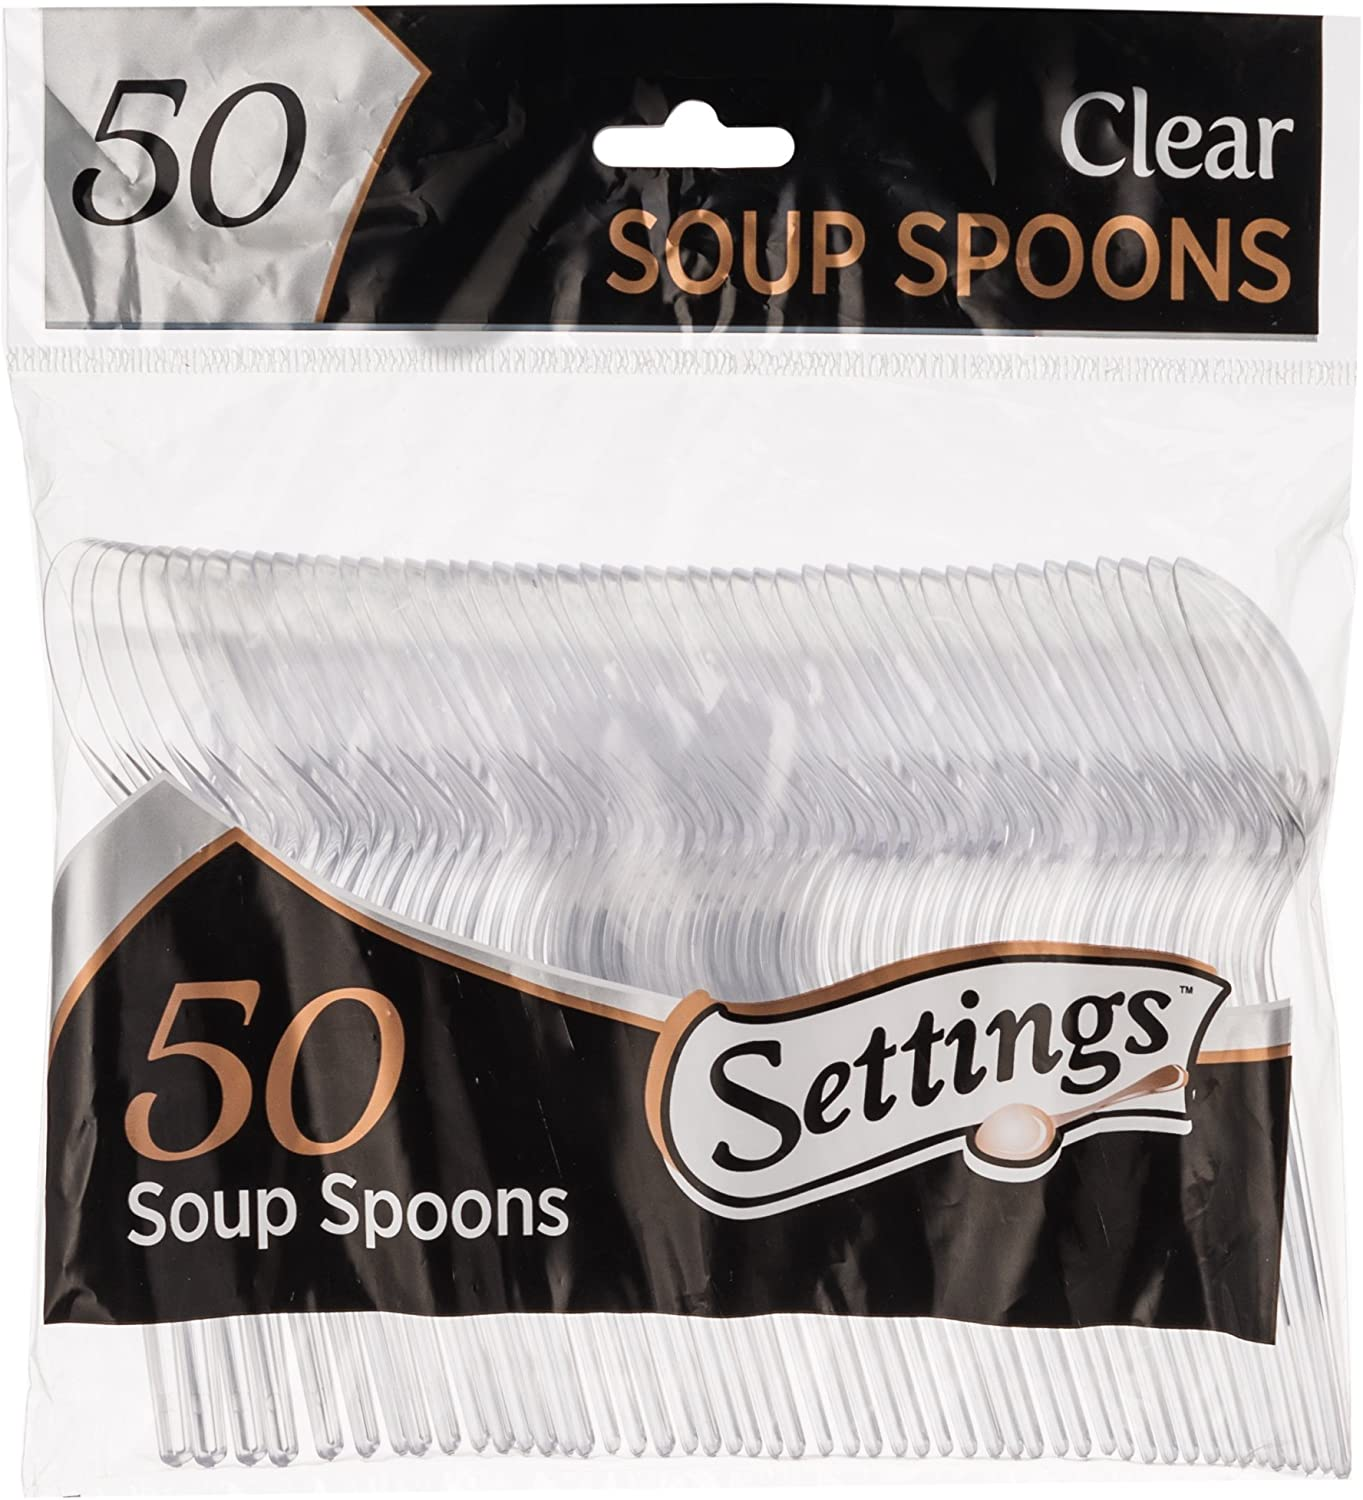 [50 Count] Settings Plastic Clear Soup Spoons, Heavyweight Disposable Cutlery, Great For Home, Office, School, Party, Picnics, Restaurant, Take-out Fast Food, Outdoor Events, Or Every Day Use, 1 Bag